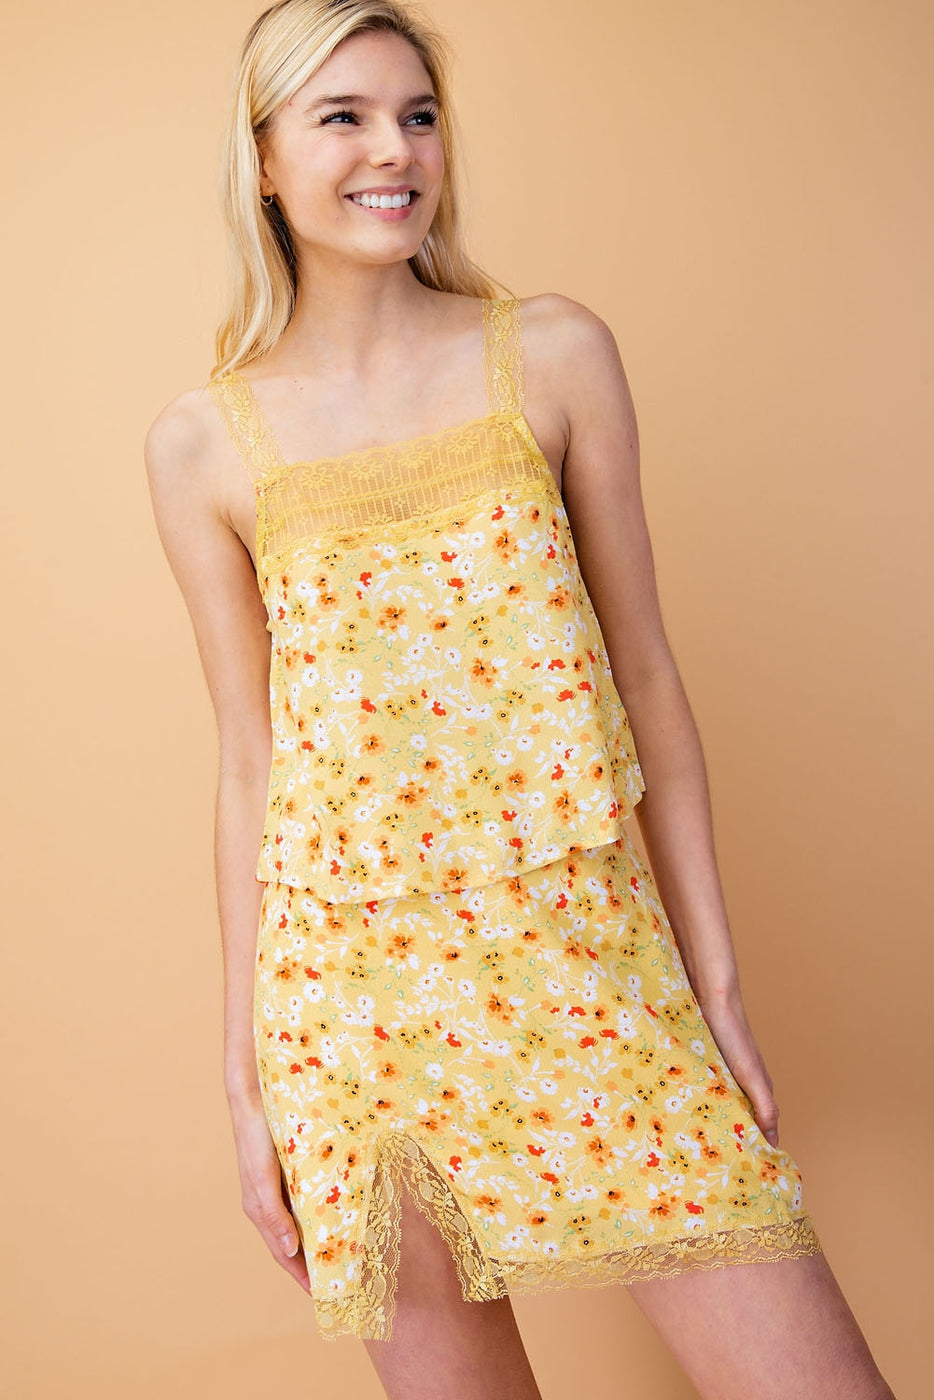 Floral Print Tank Top With Lace Trim Detail Siin Bees